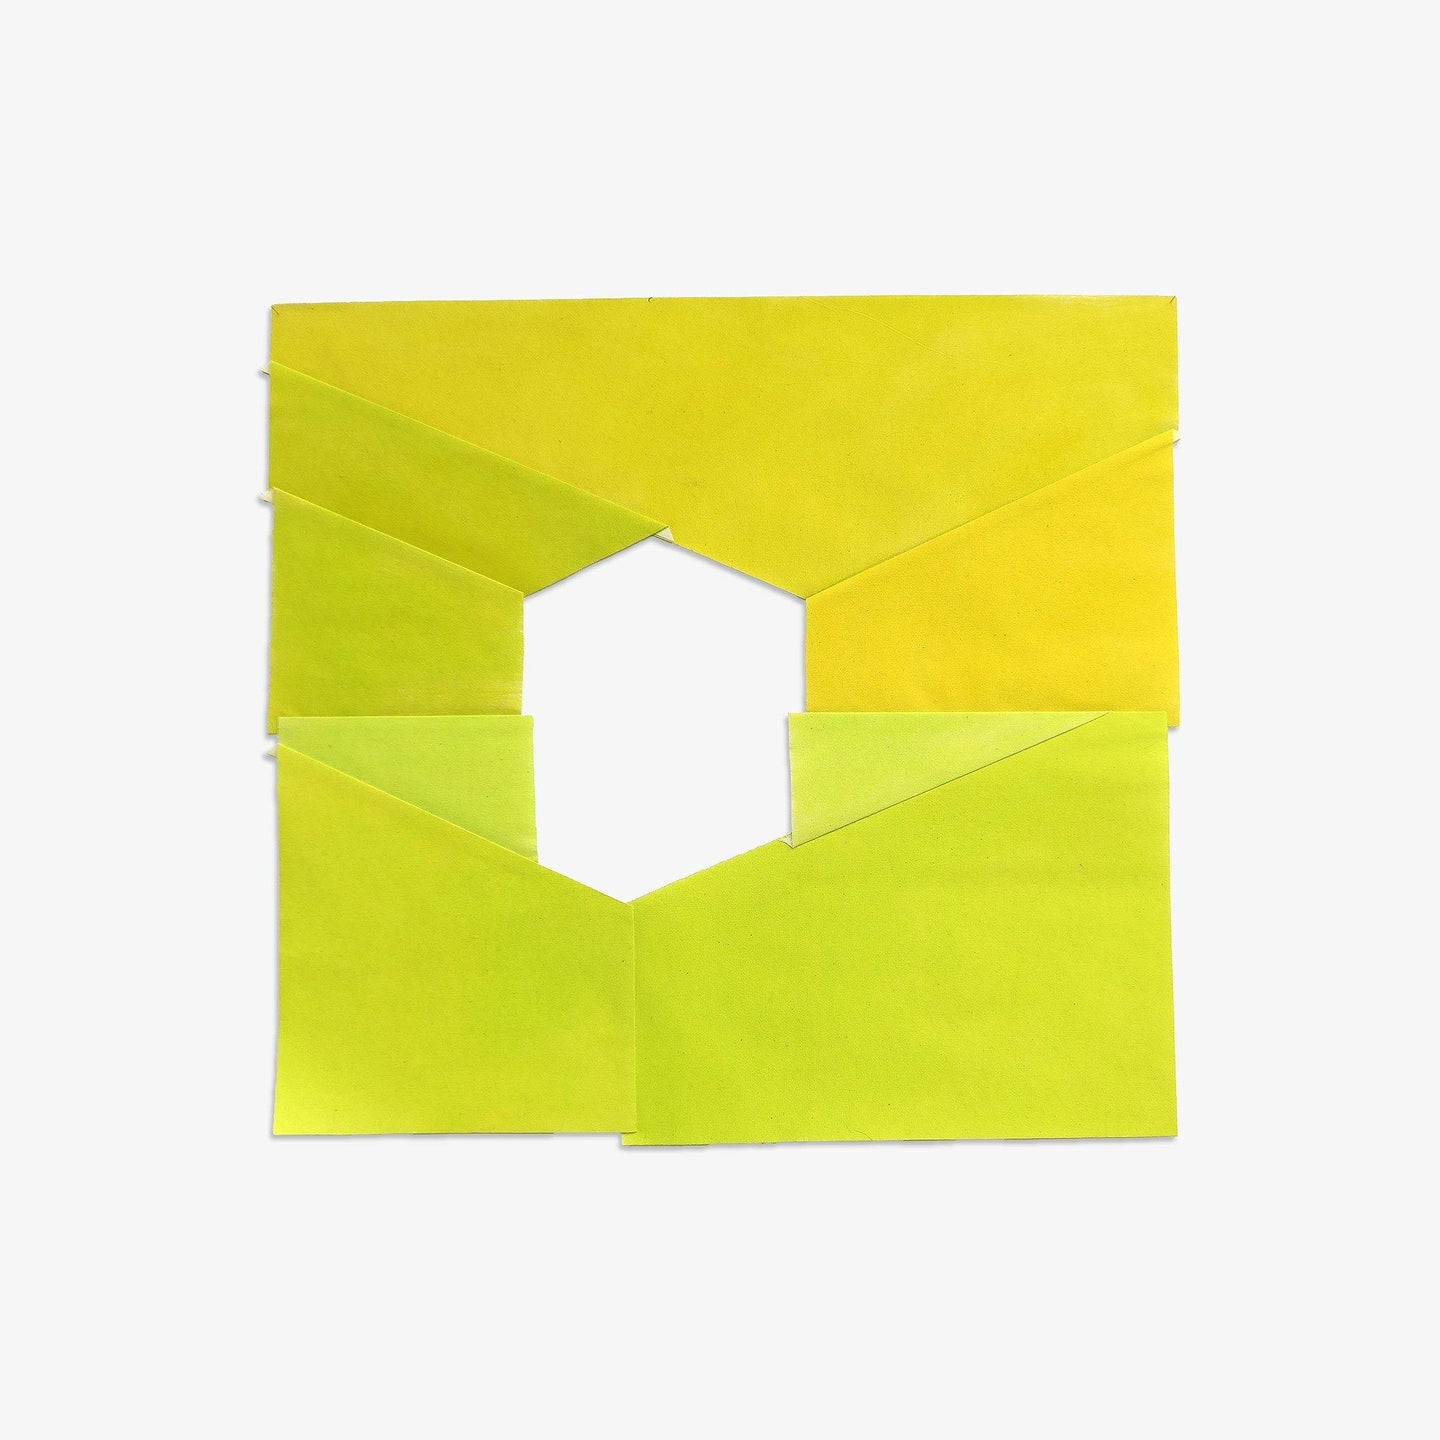 Composition Verdad #4 (Green-Yellow)